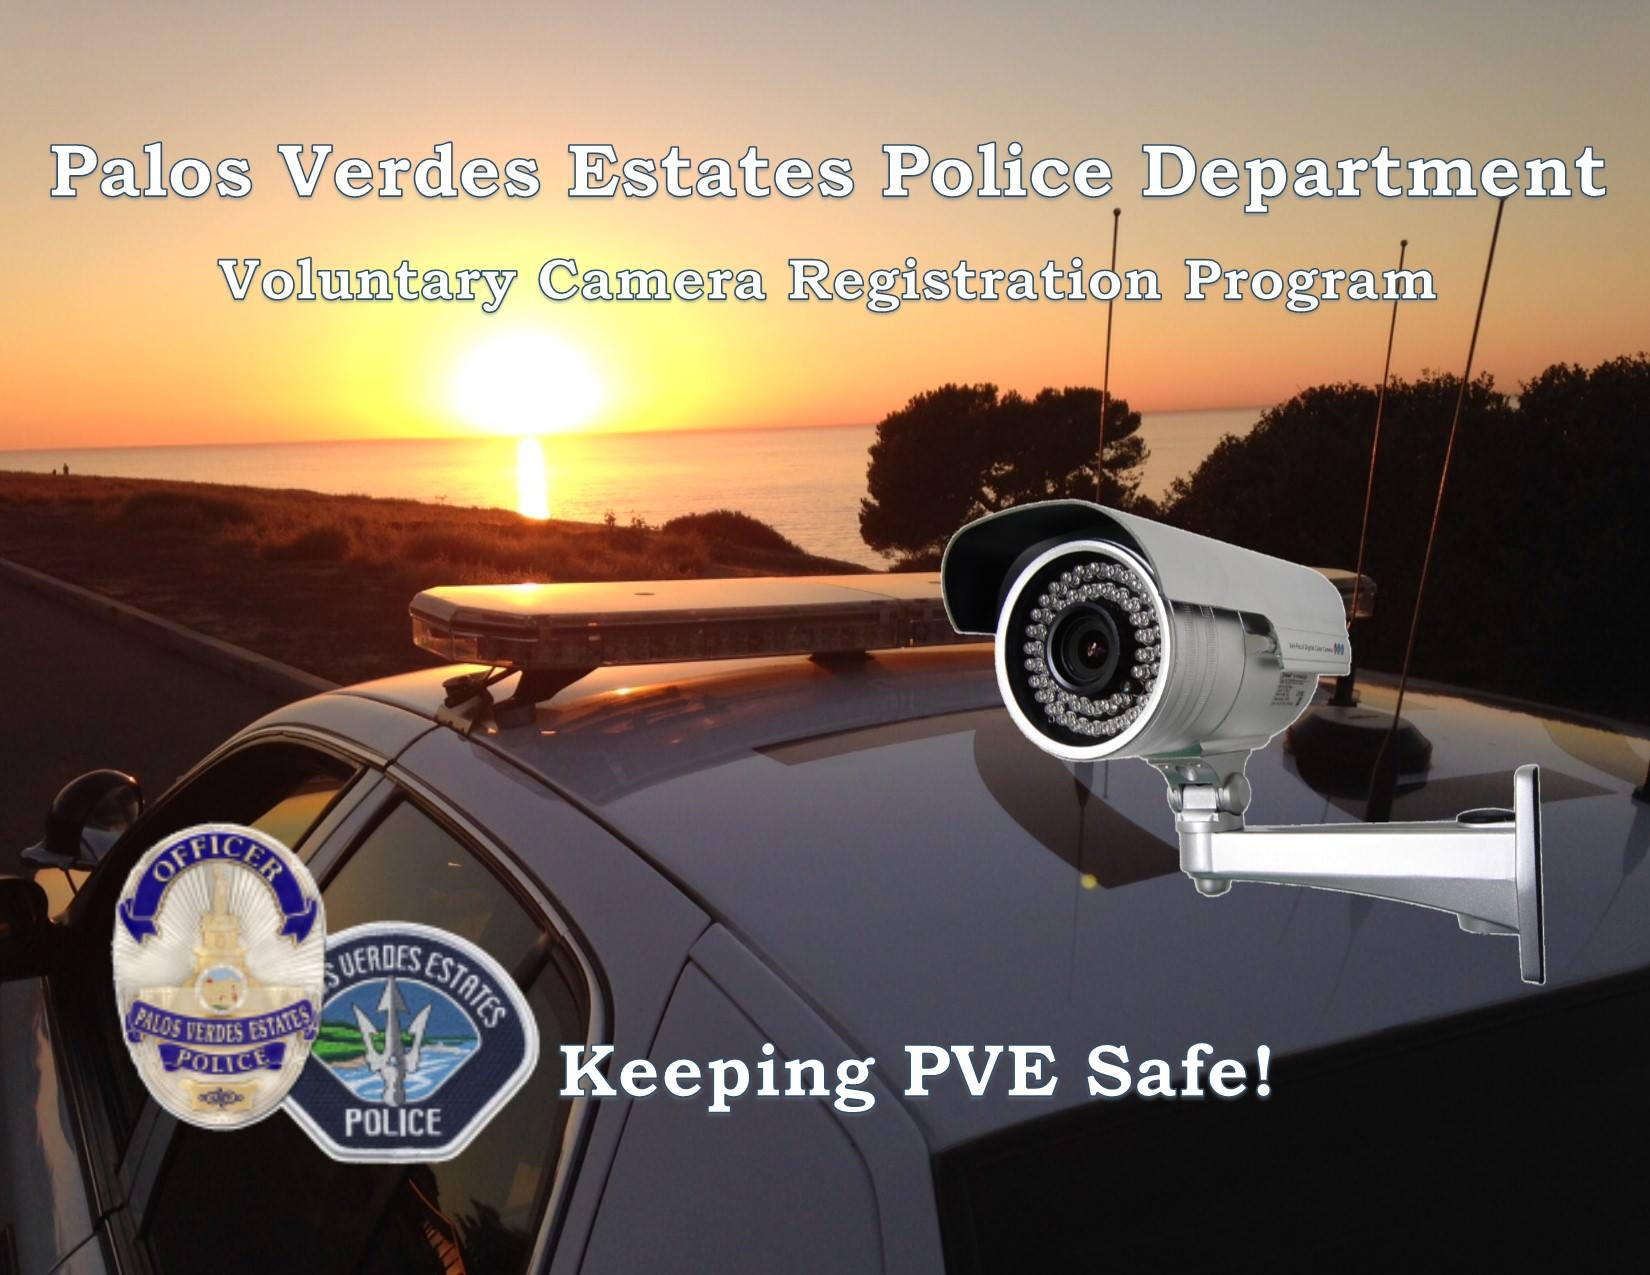 PVEPD Voluntary Camera Registration